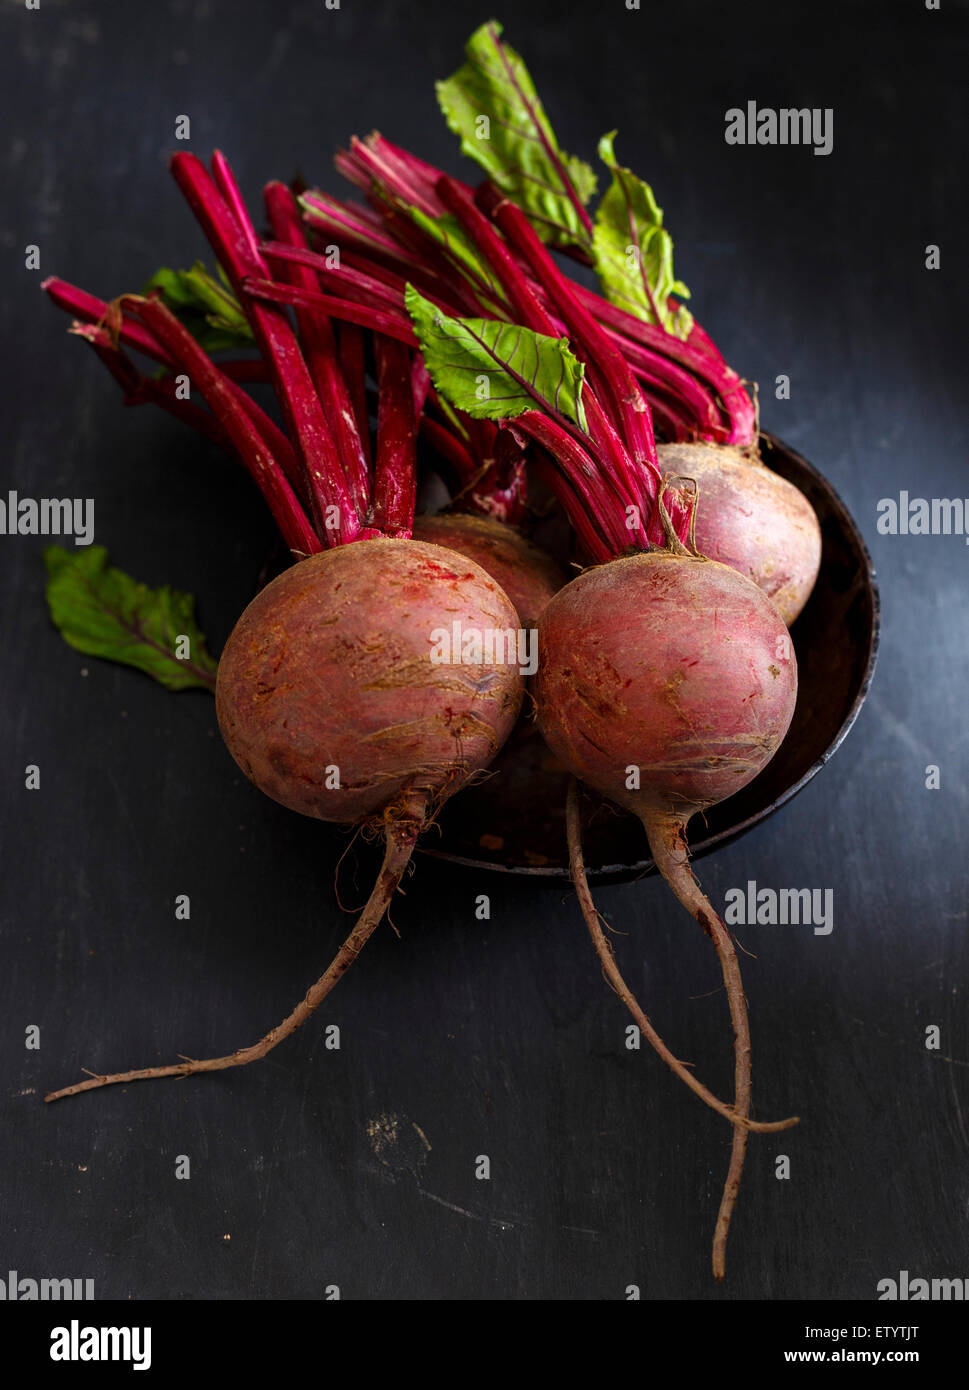 fresh Beetroot on a  wooden background - Stock Image